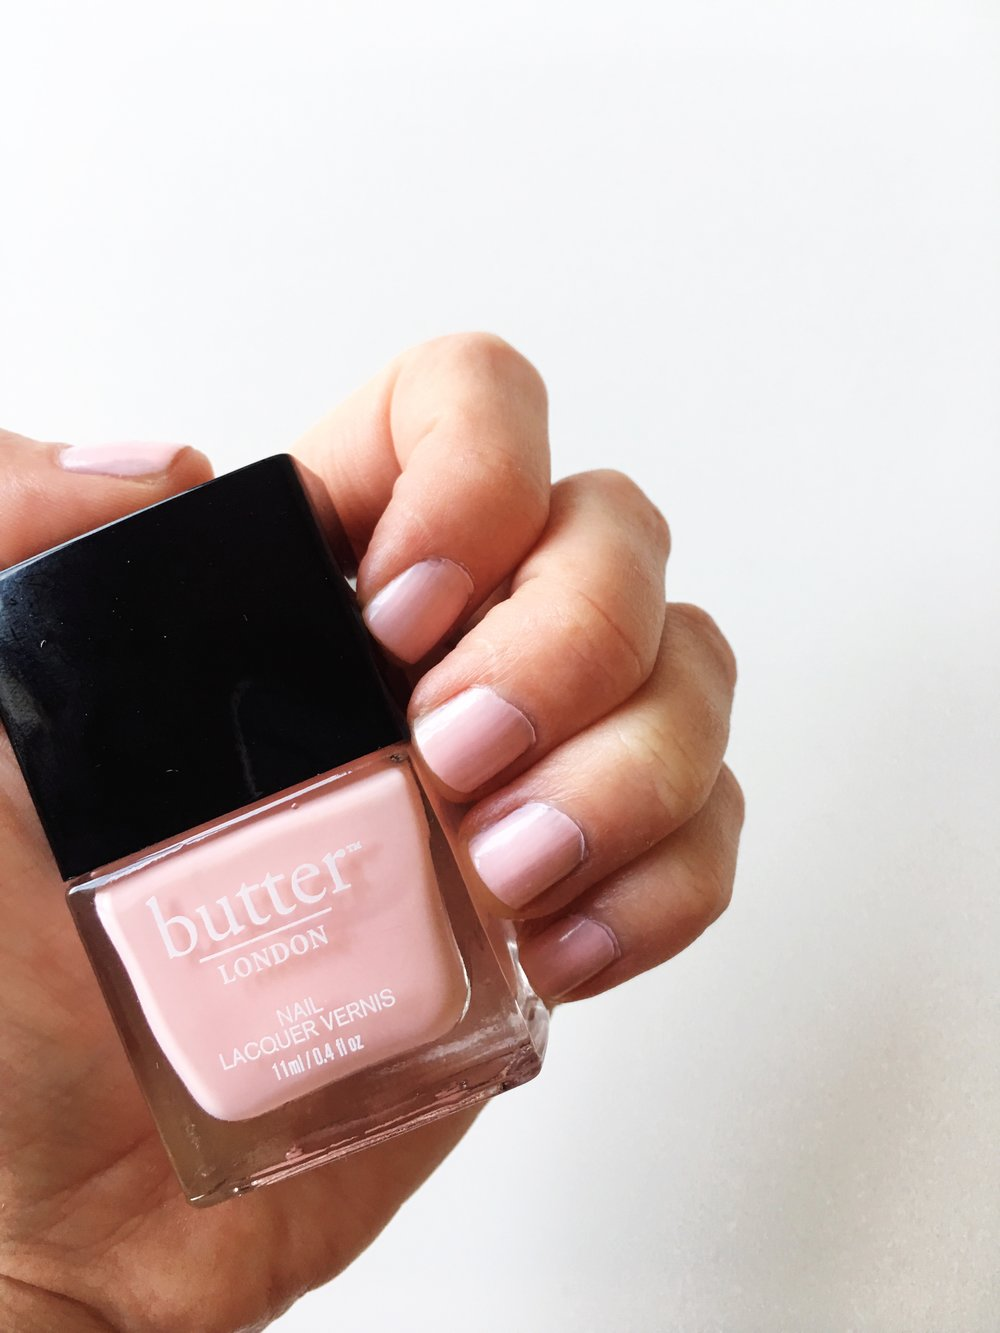 The most perfect pink on the planet 💕 // Butter London in Teddy Girl